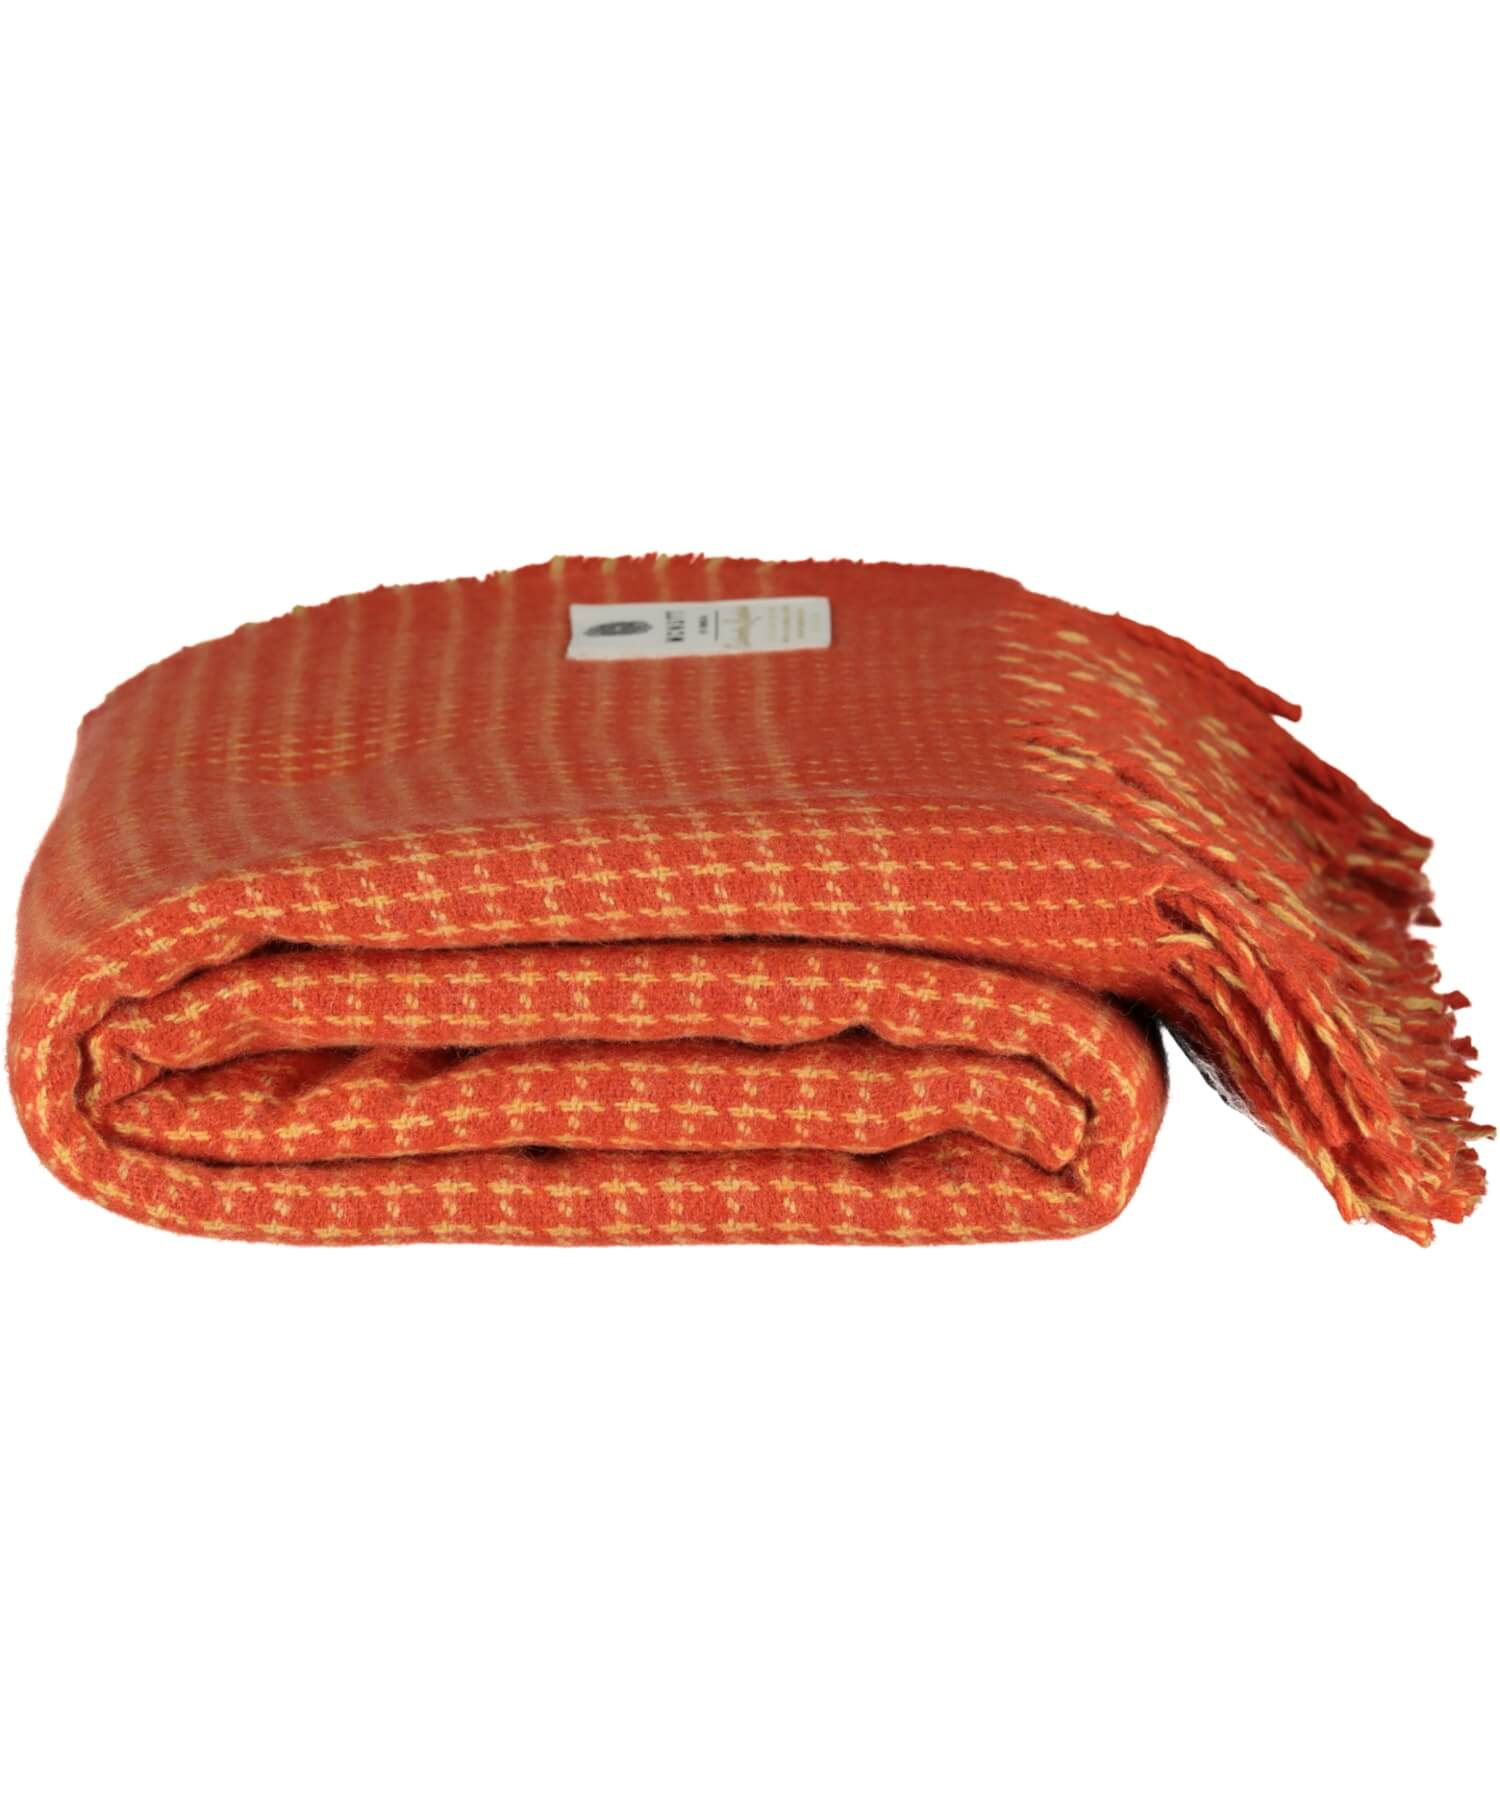 Cashmere Lambswool Throw - Sunset - [McNutts] - Throws & Cushions - Irish Gifts